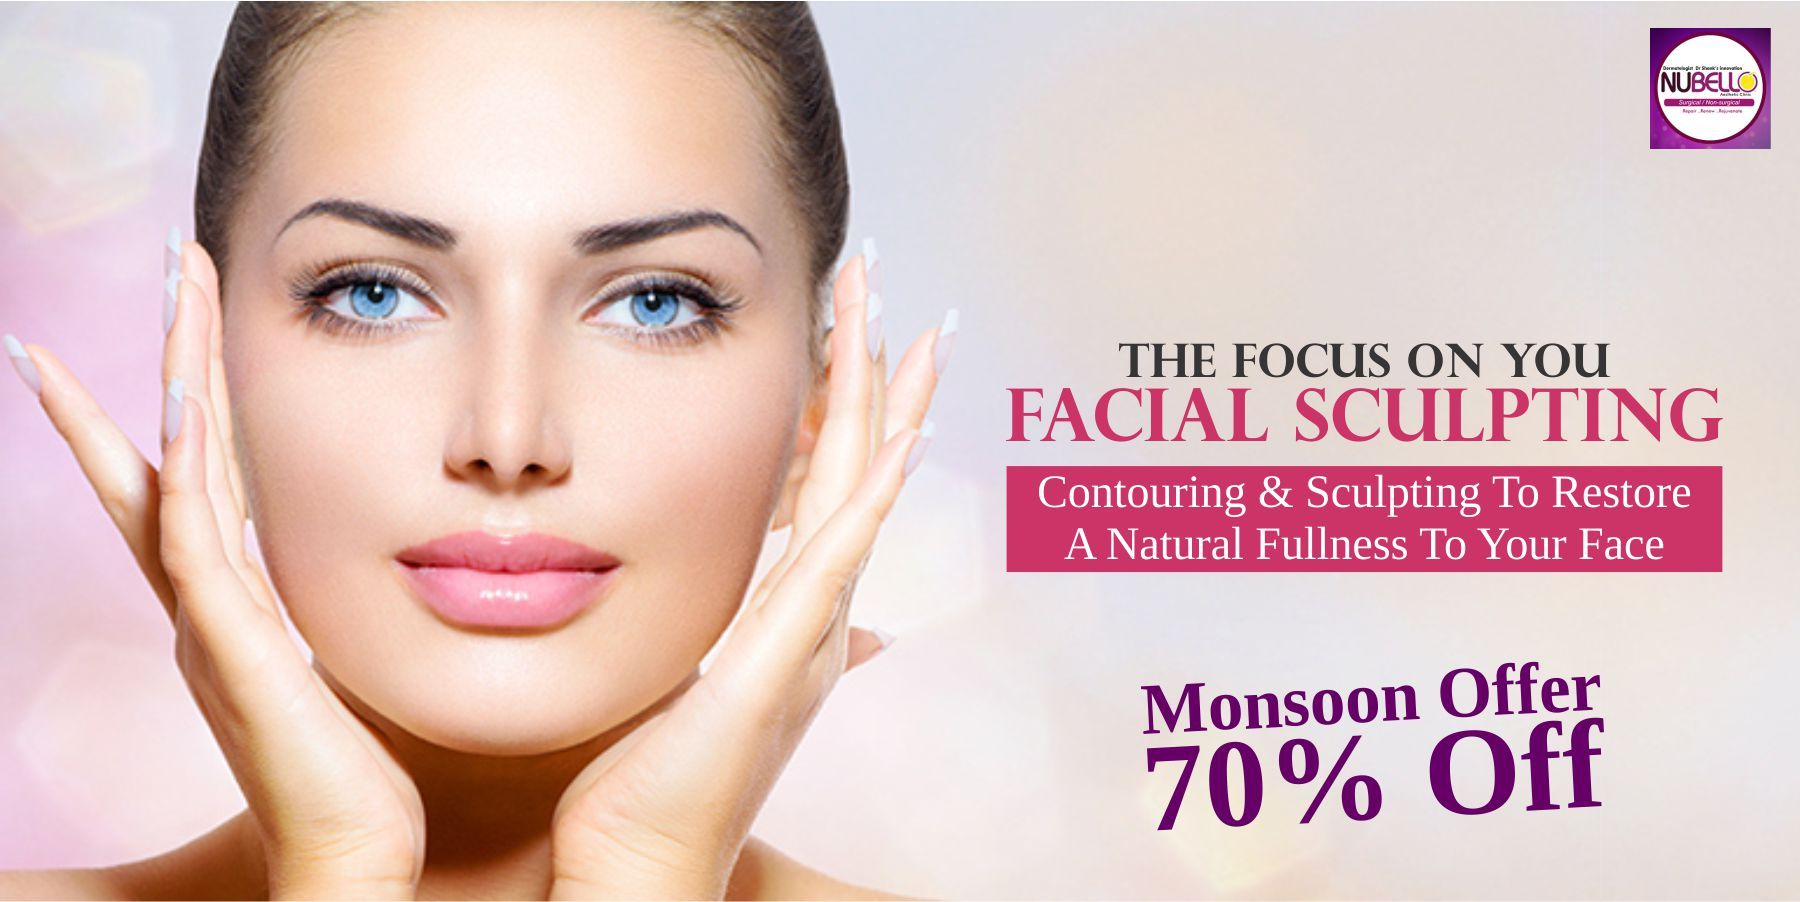 best images about cosmetic surgery in mumbai new 17 best images about cosmetic surgery in mumbai new you beautiful lips and perfect nose